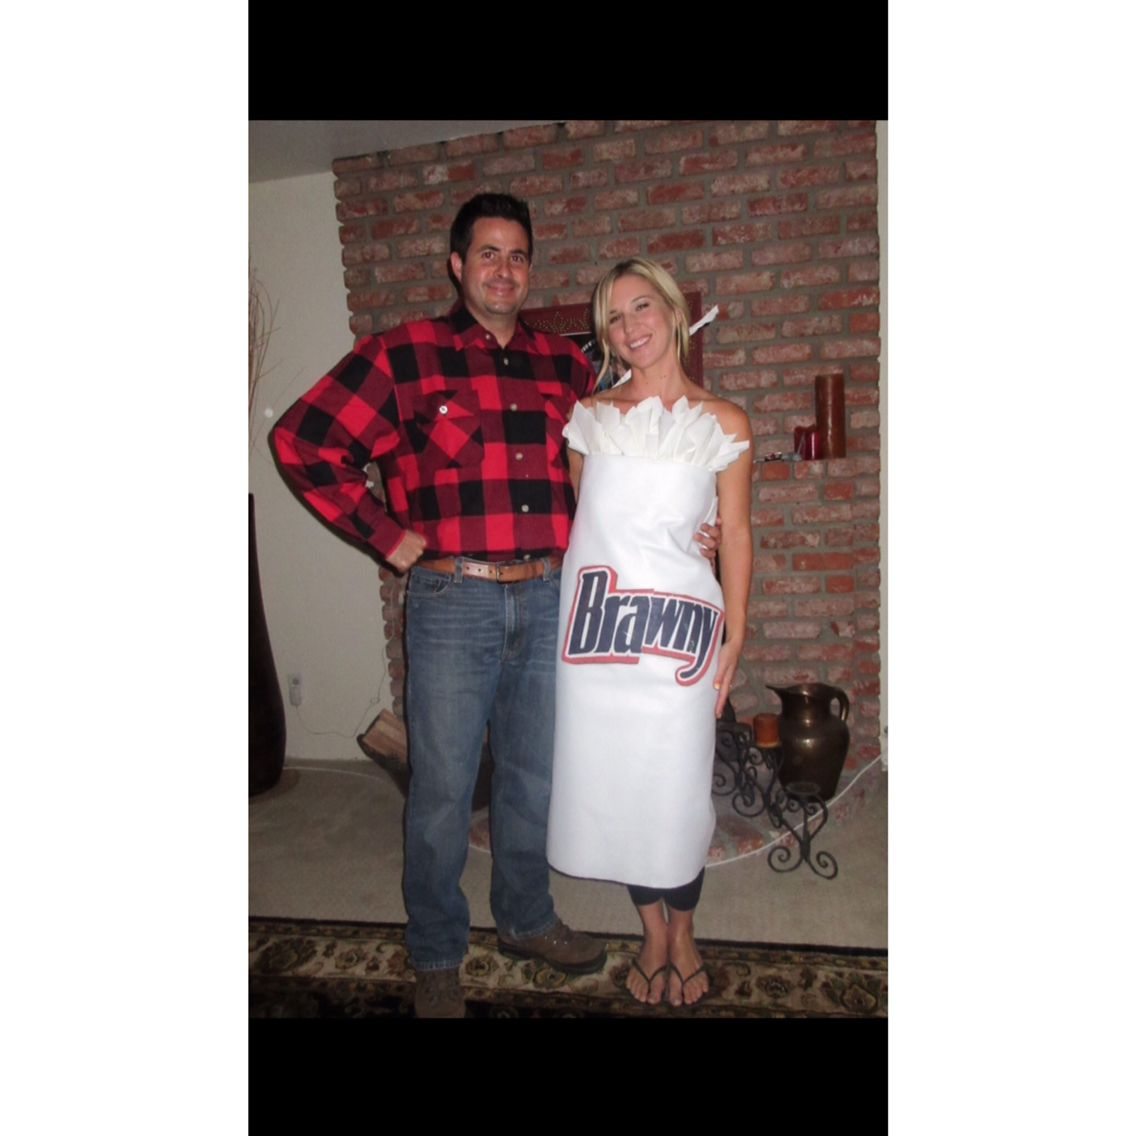 Cheap and easy Halloween costume! Brawny Man and Brawny paper towels.  sc 1 st  Pinterest & Cheap and easy Halloween costume! Brawny Man and Brawny paper towels ...